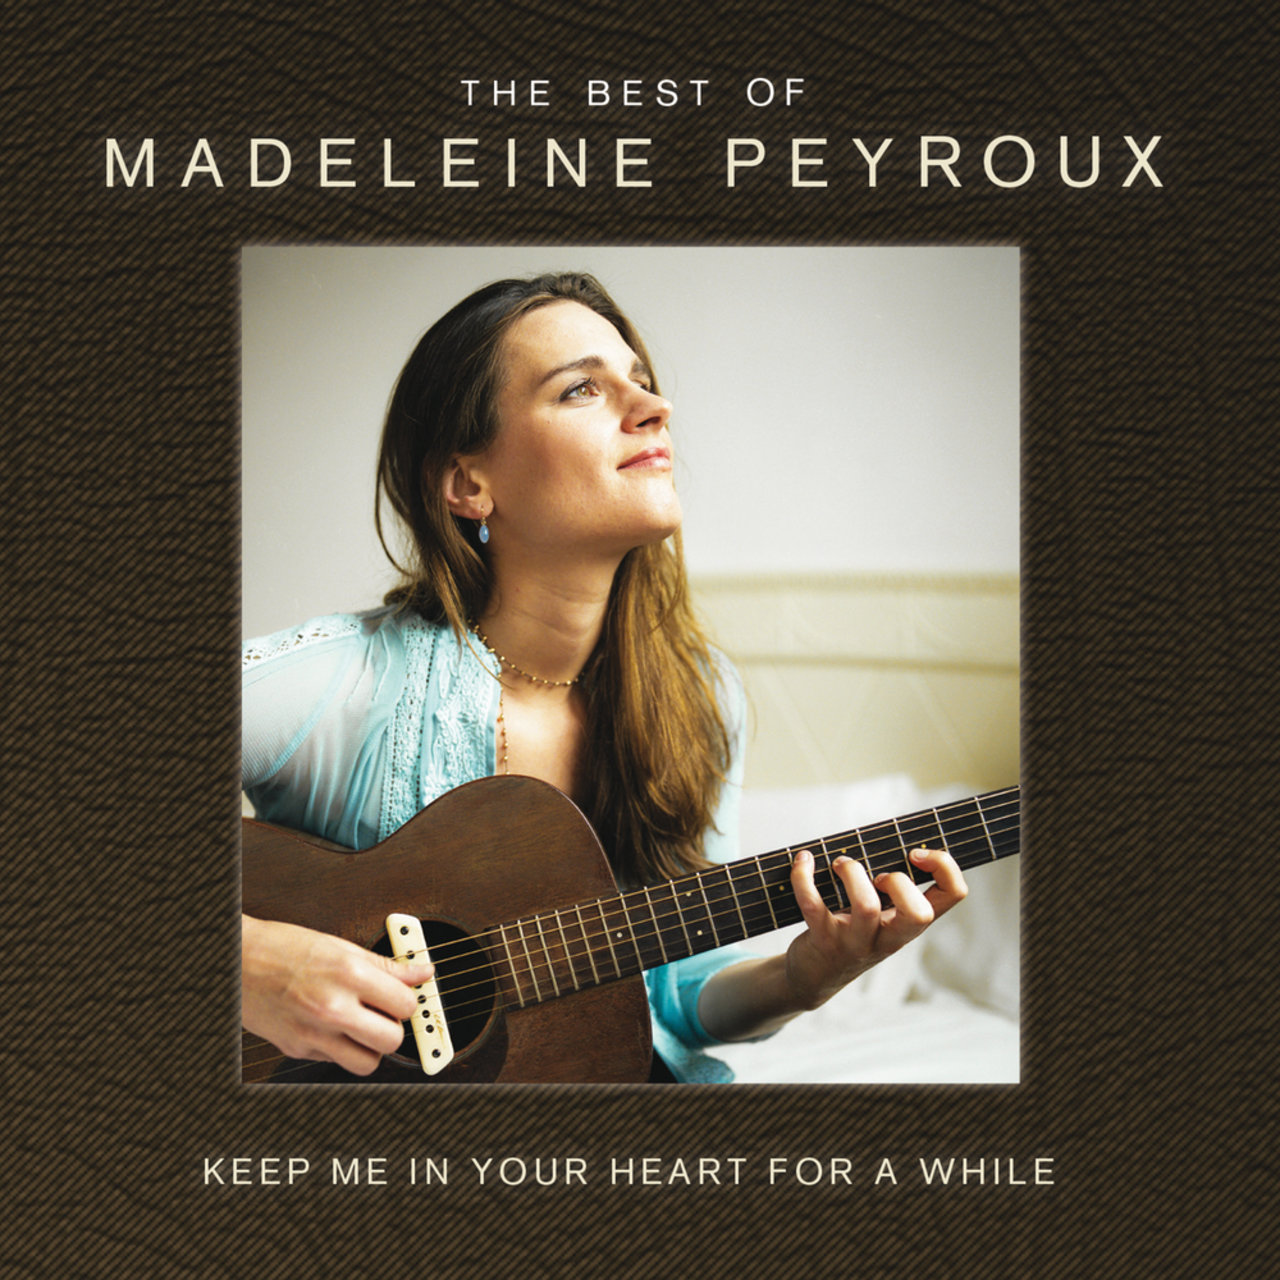 Keep Me In Your Heart For A While: The Best Of Madeleine Peyroux (International Edition)